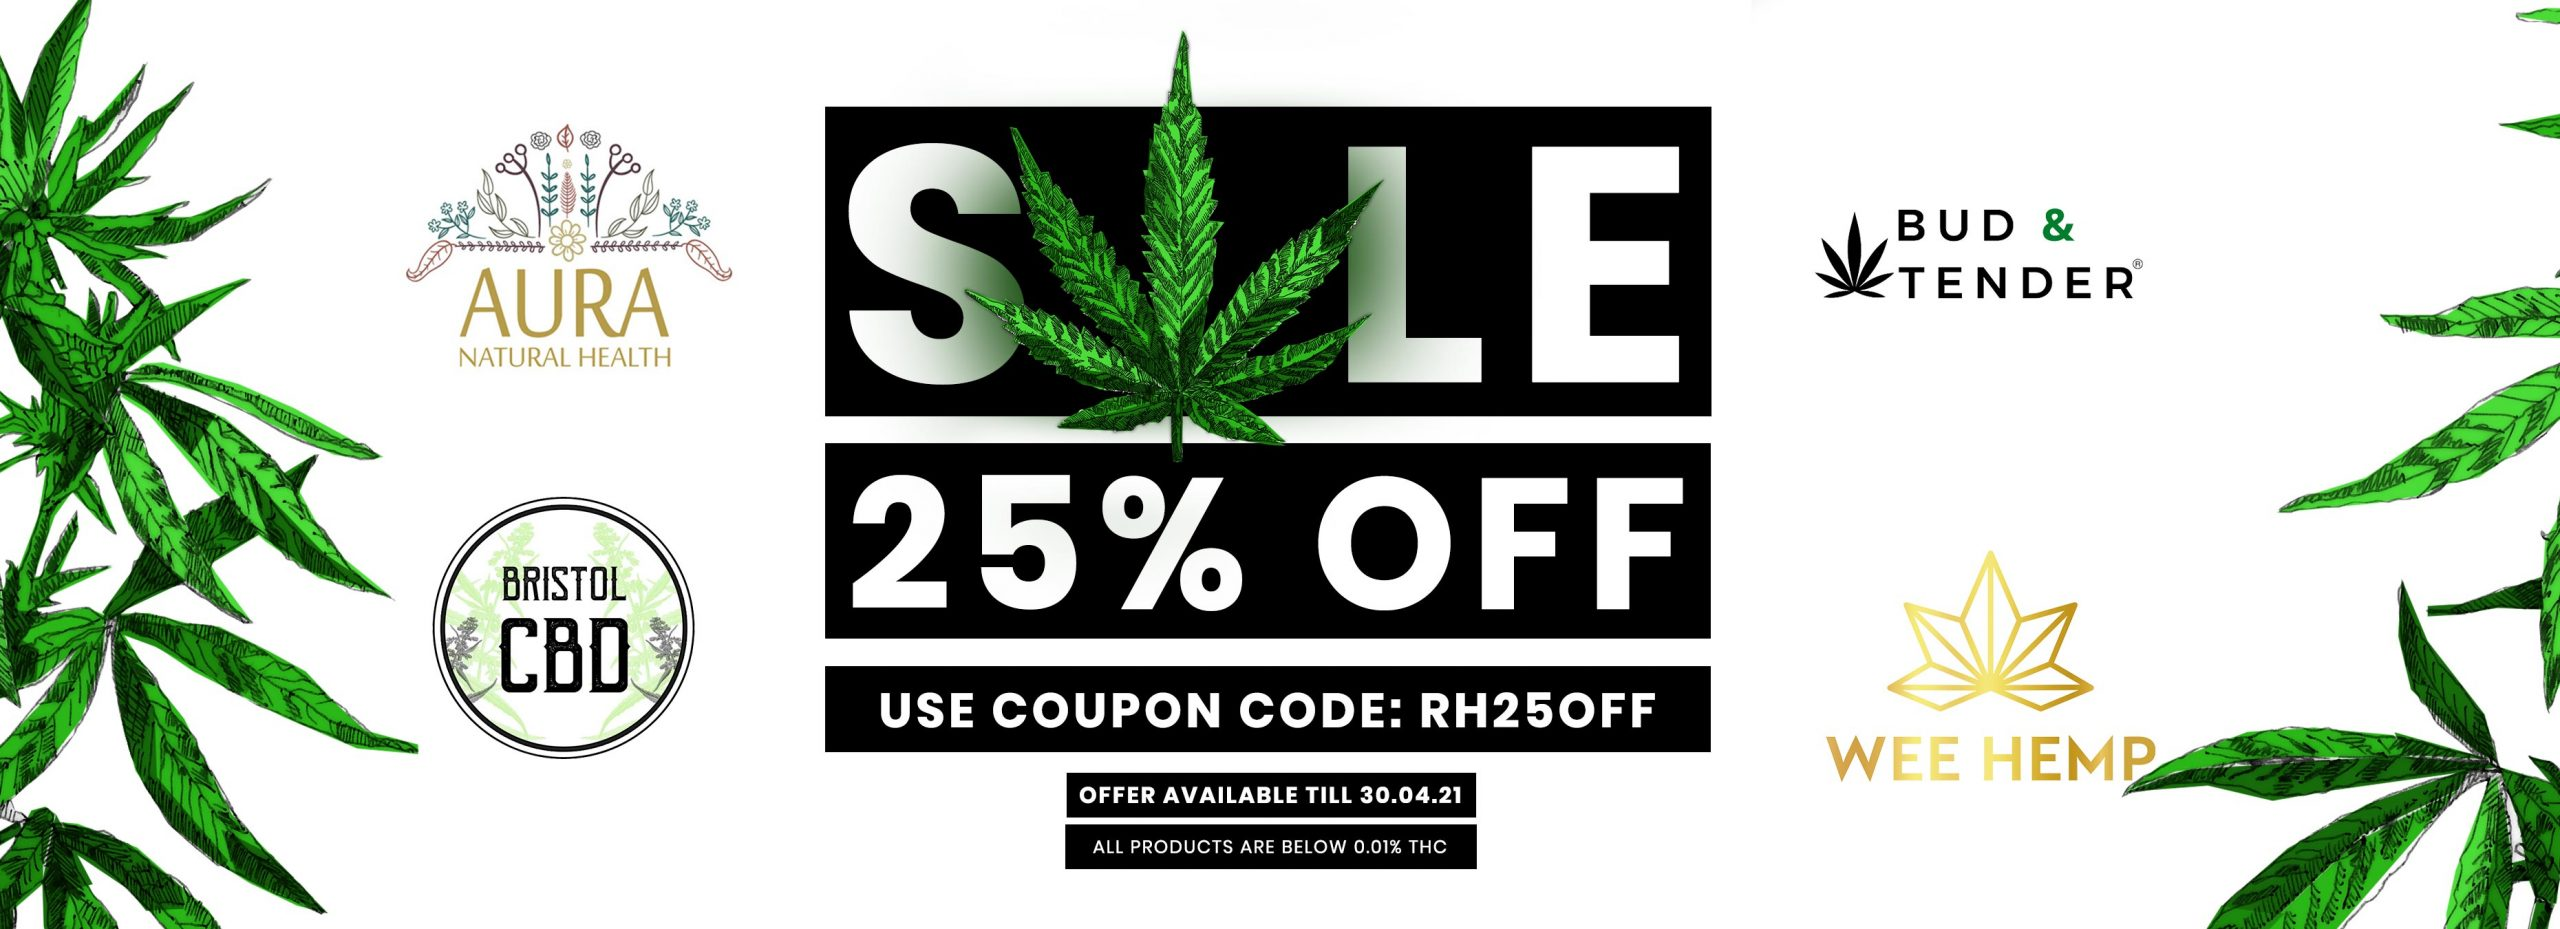 25% Off Sale! Use Coupon Code RH25OFF